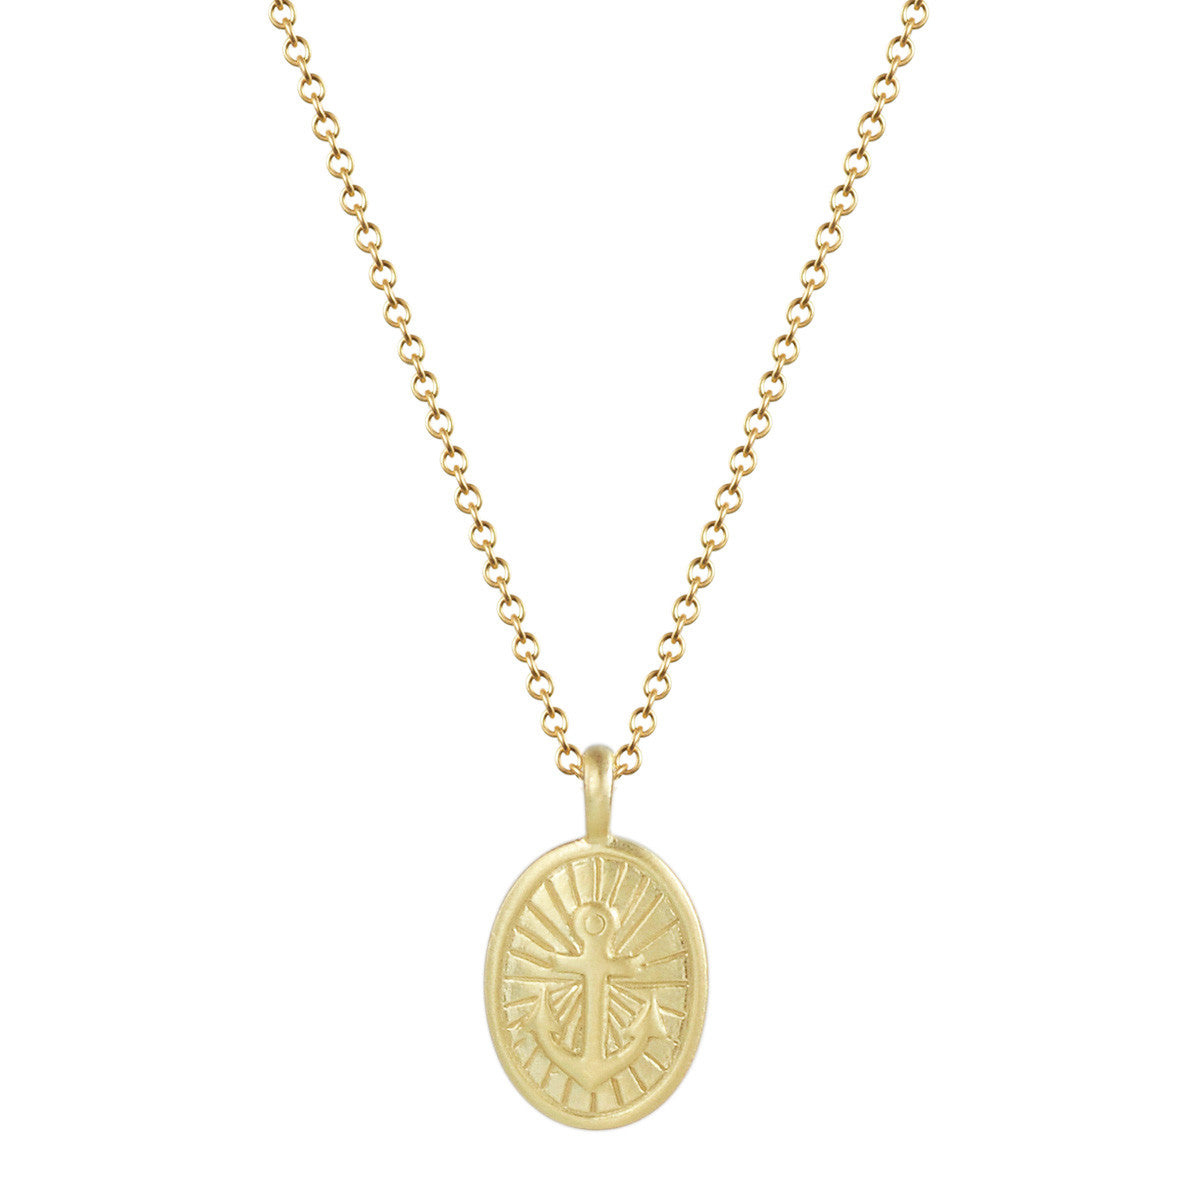 18K Gold Hope Trinket Pendant